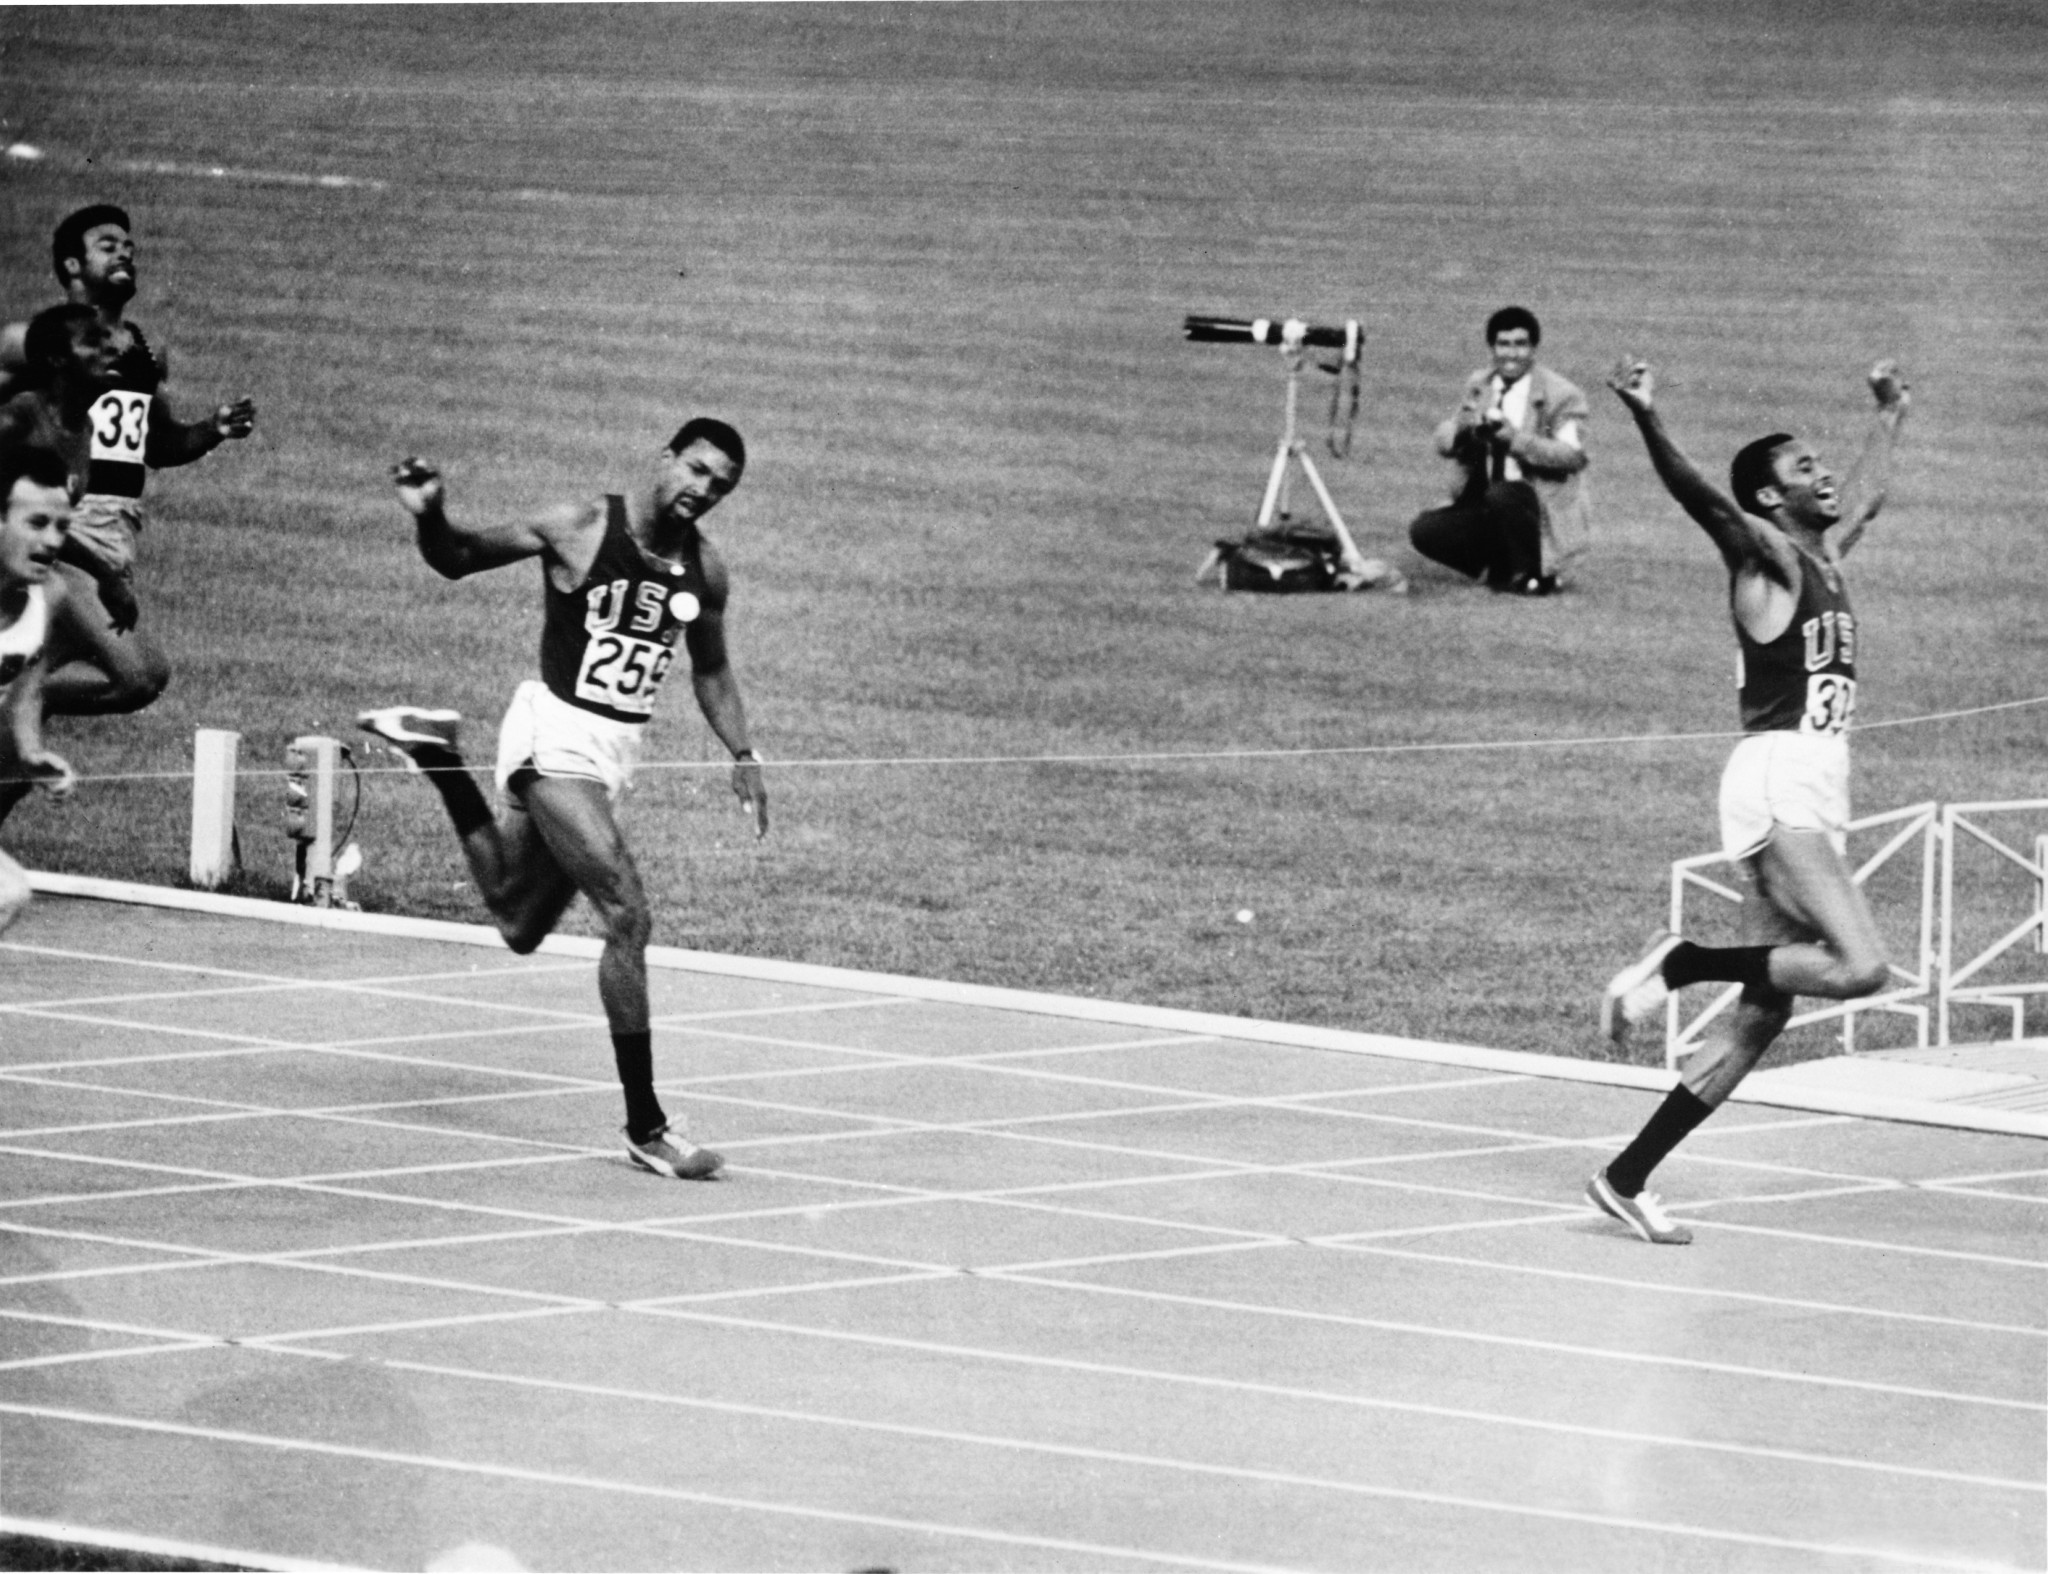 """Our columnist argues that the actions of Tommie Smith, Peter Norman and John Carlos at the Mexico 1968 Olympics represent """"the start of a way of athletes using their voice"""" ©Getty Images"""